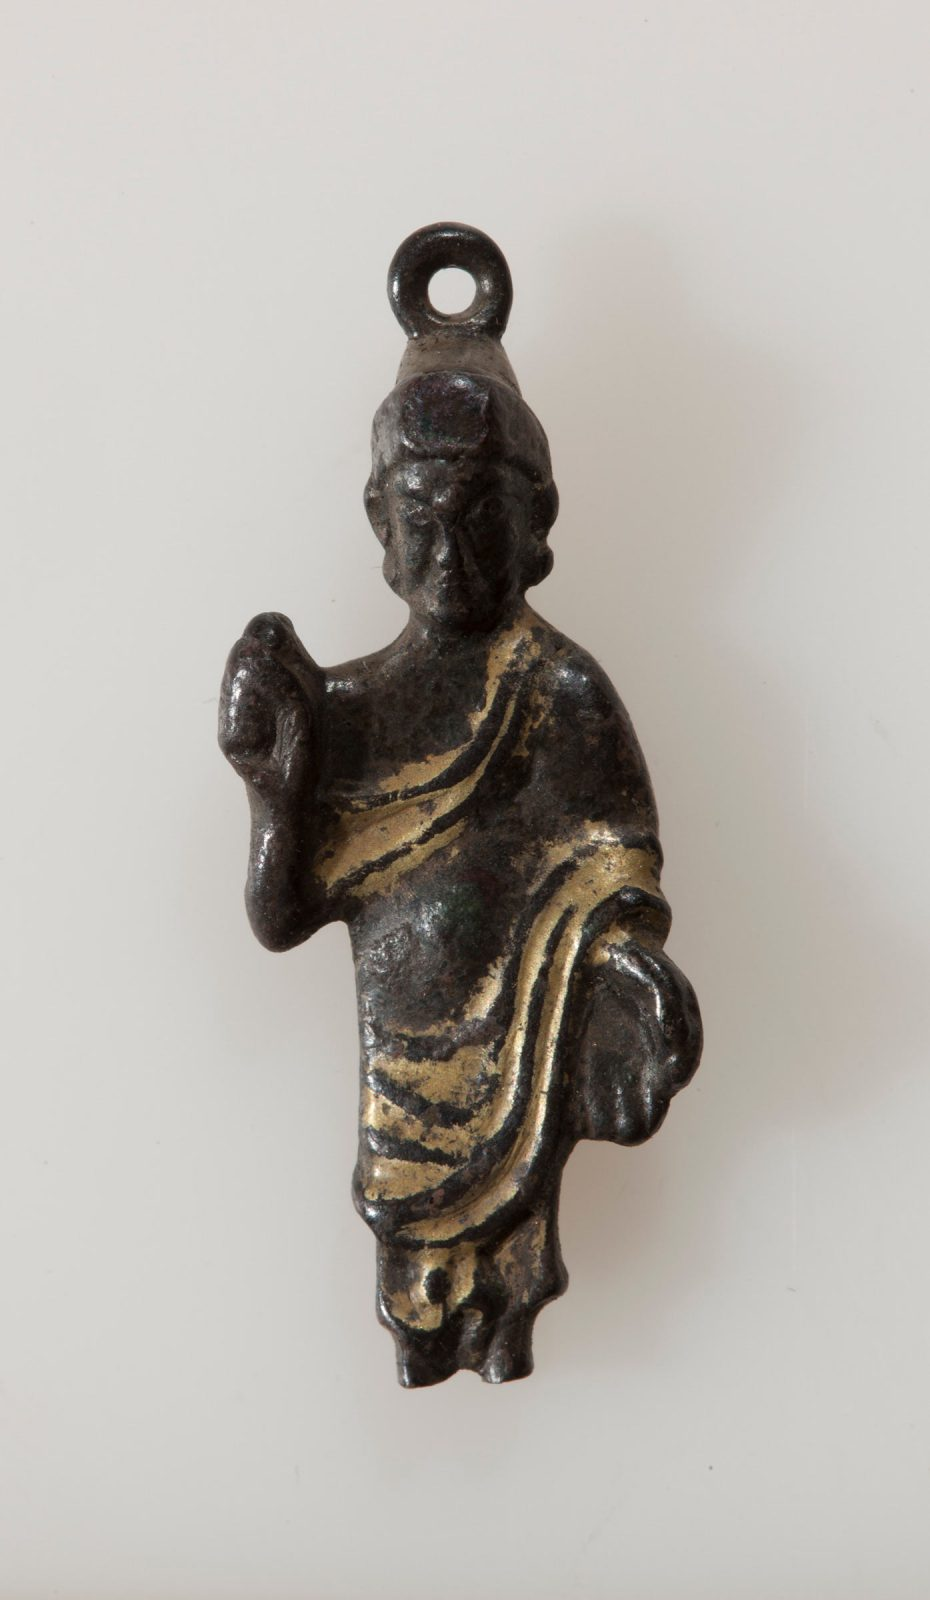 Buddha figure with raised right hand and lowered left hand in robe